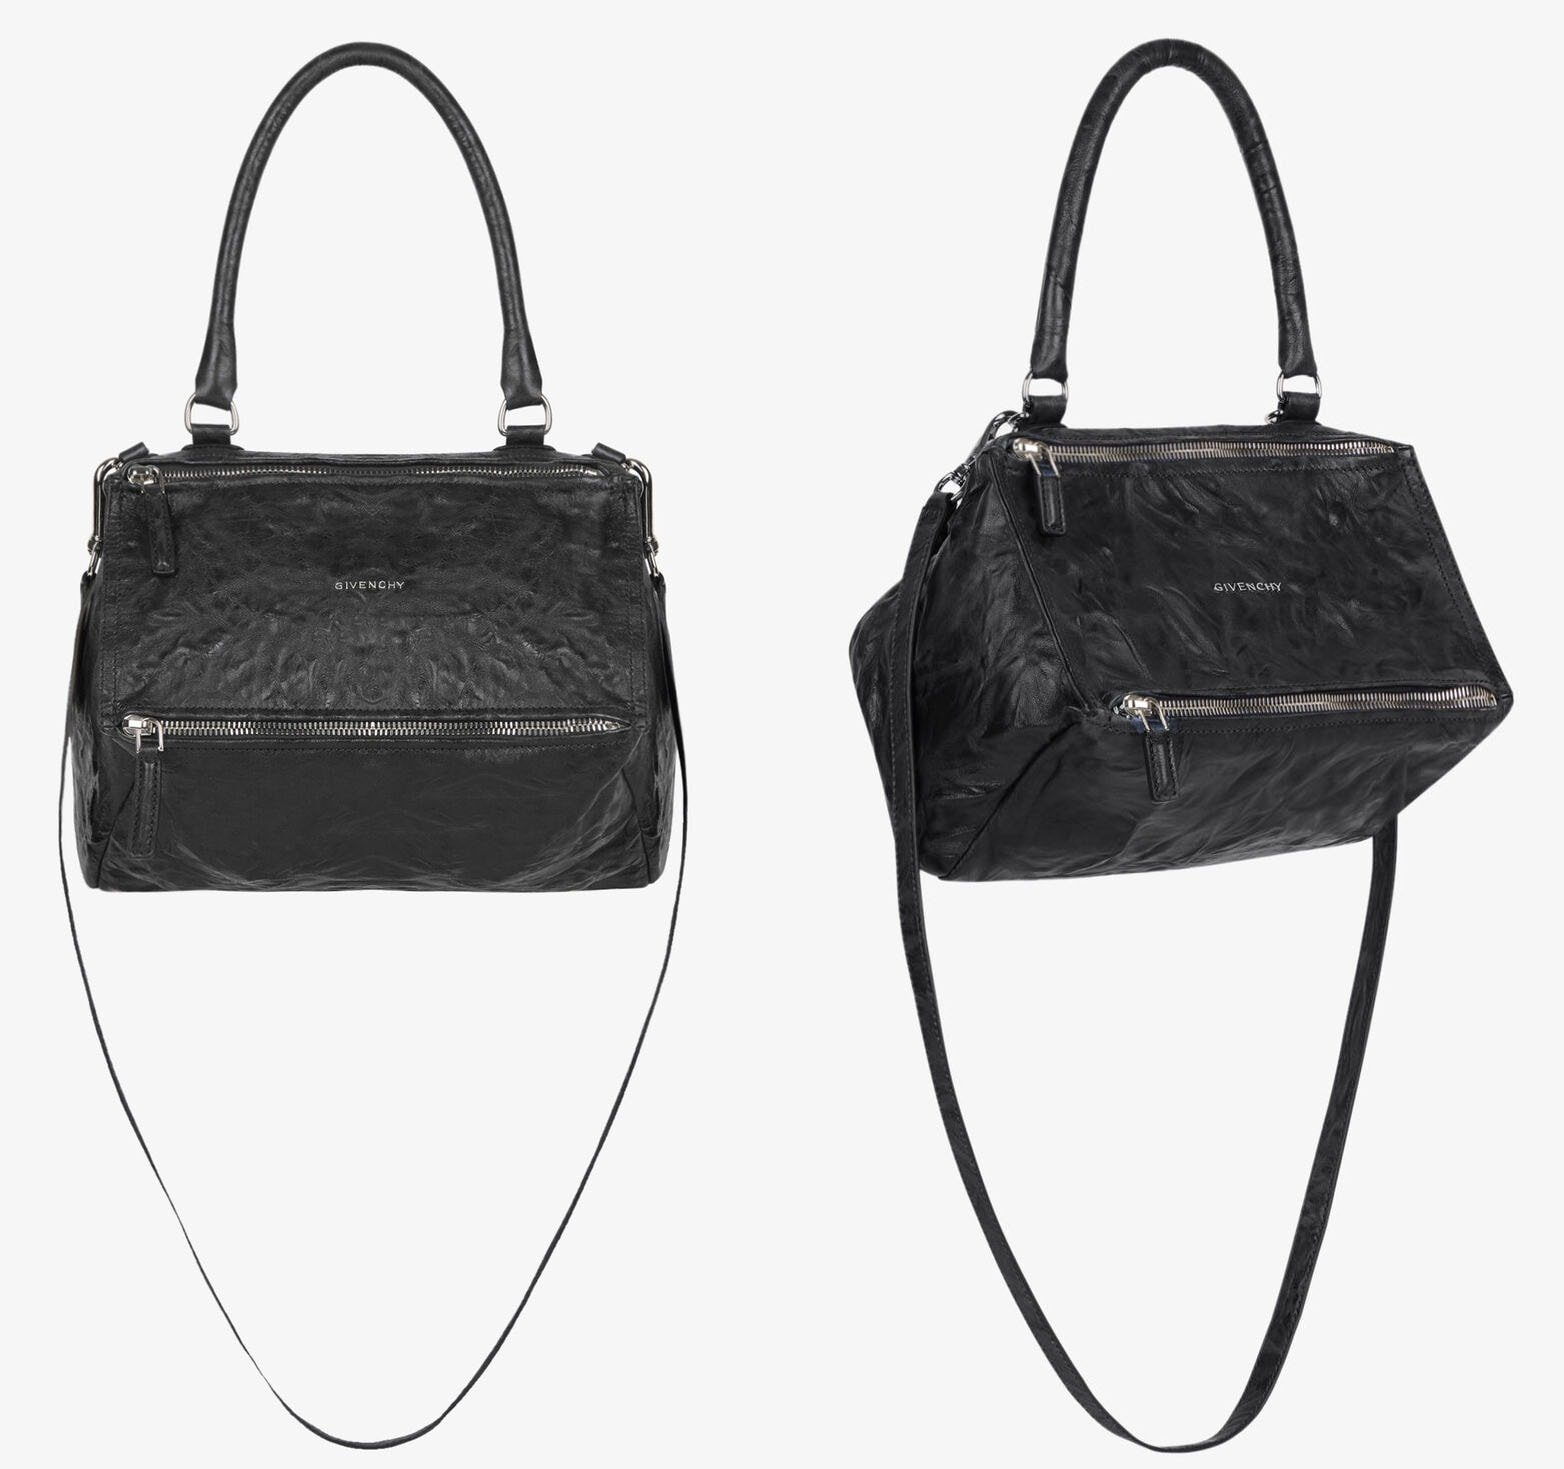 Easily identified by its cube shape, the Givenchy Pandora has two metal zips, a single handle, and a removable shoulder strap